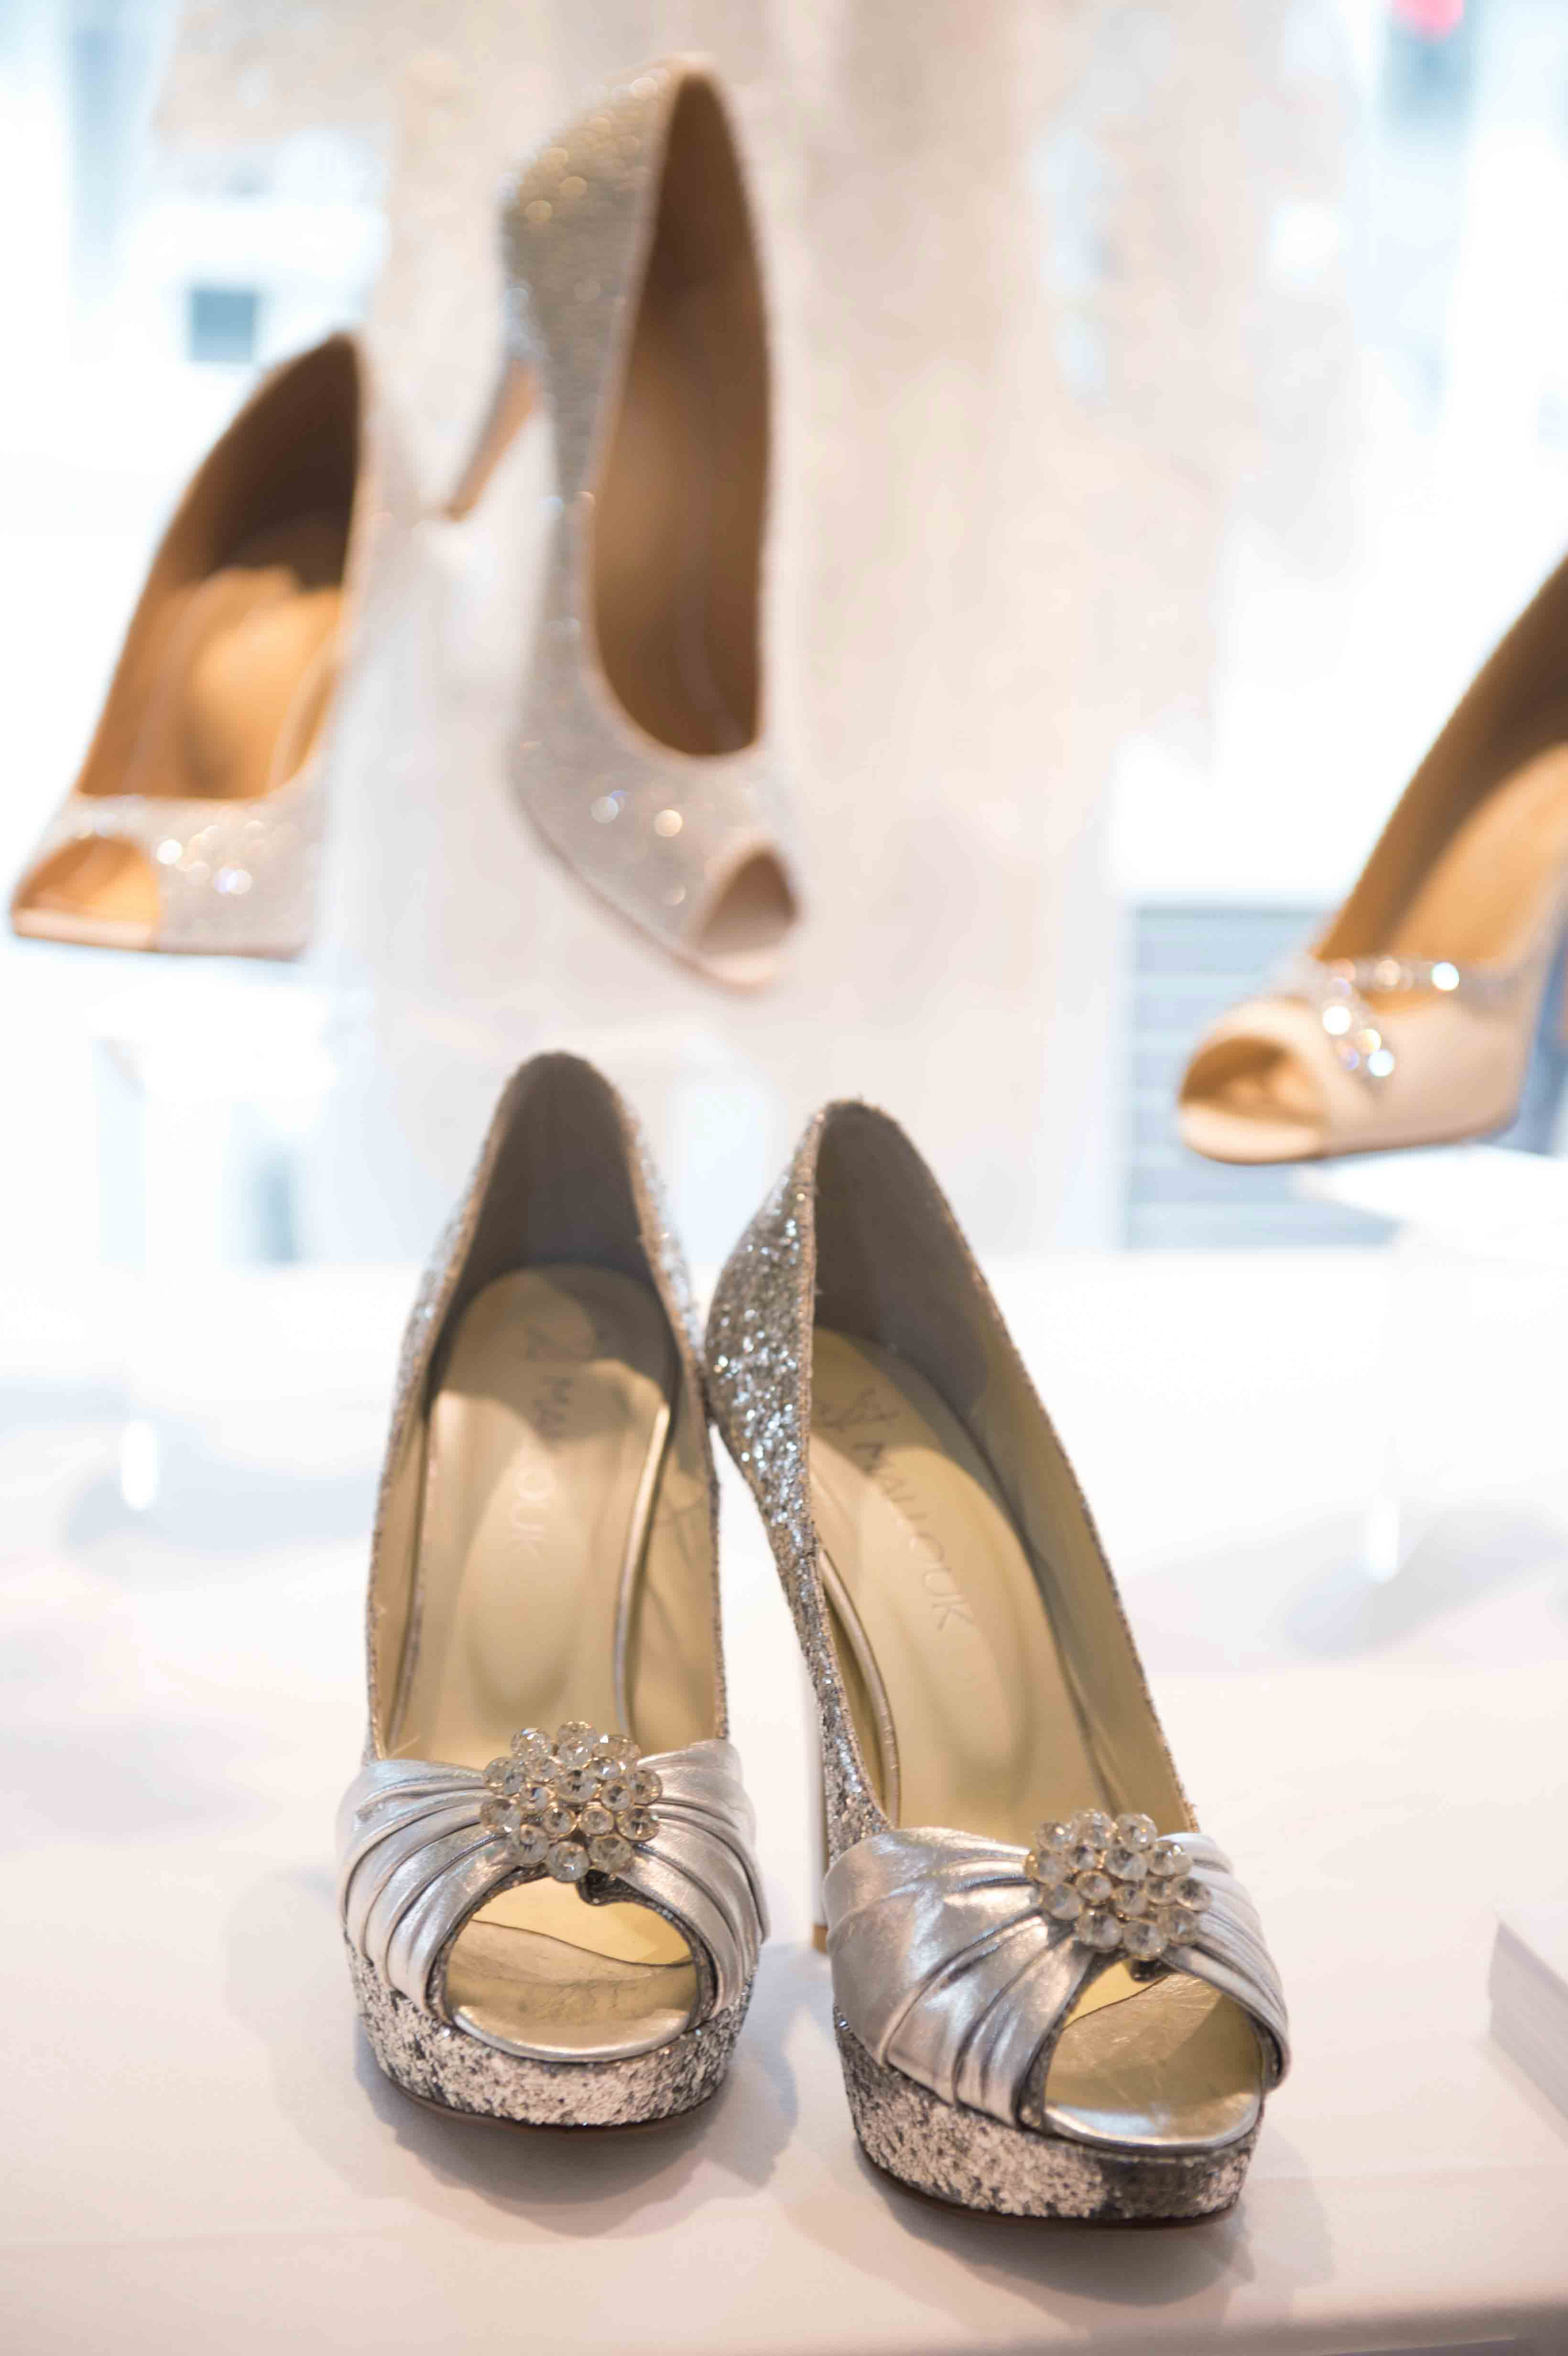 Custom made bridal shoes/ heels by Mallouk Melbourne